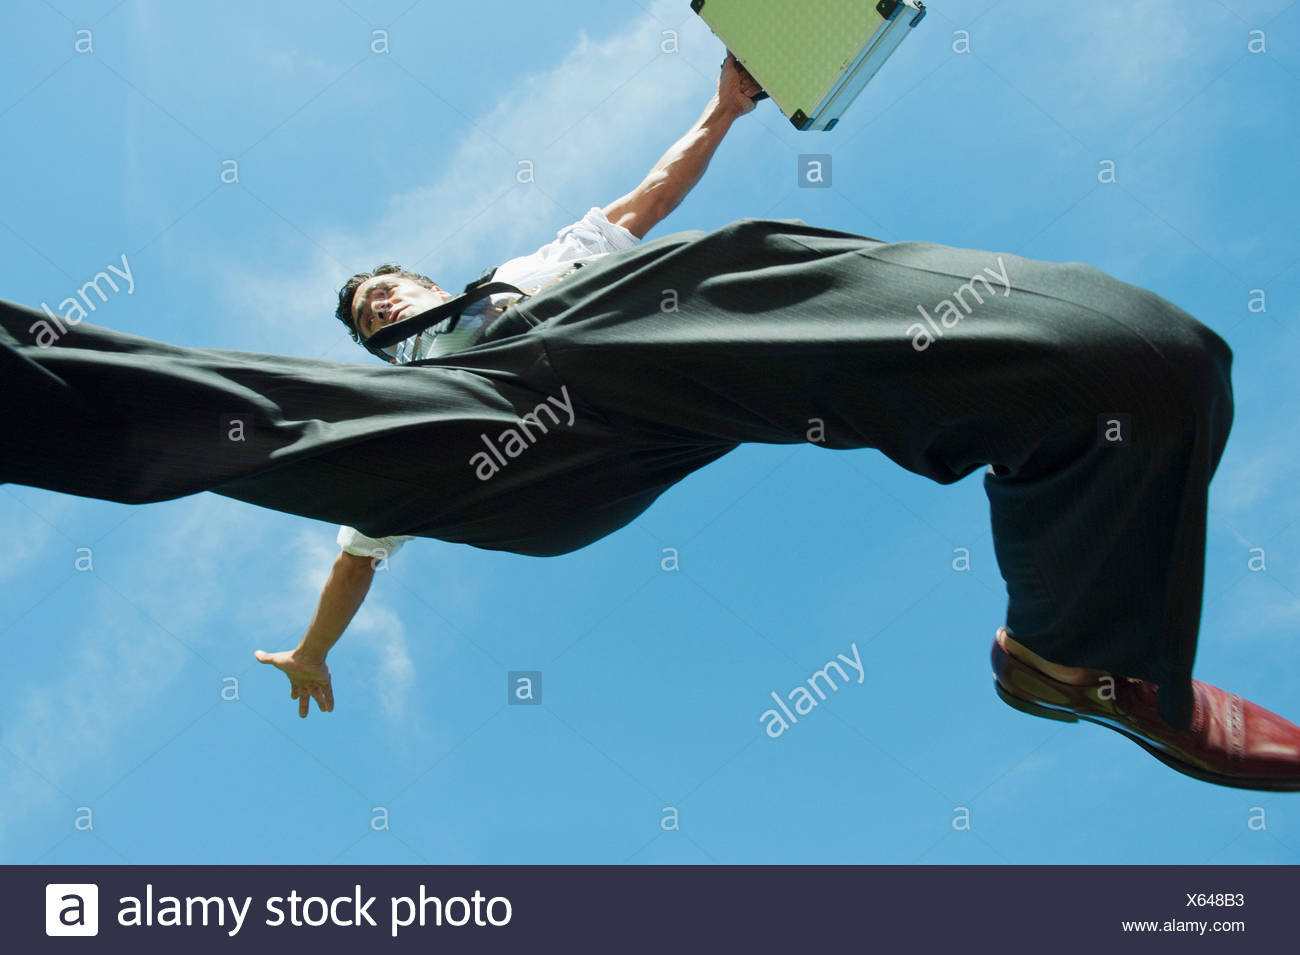 Businessman jumping in air carrying briefcase, directly below - Stock Image